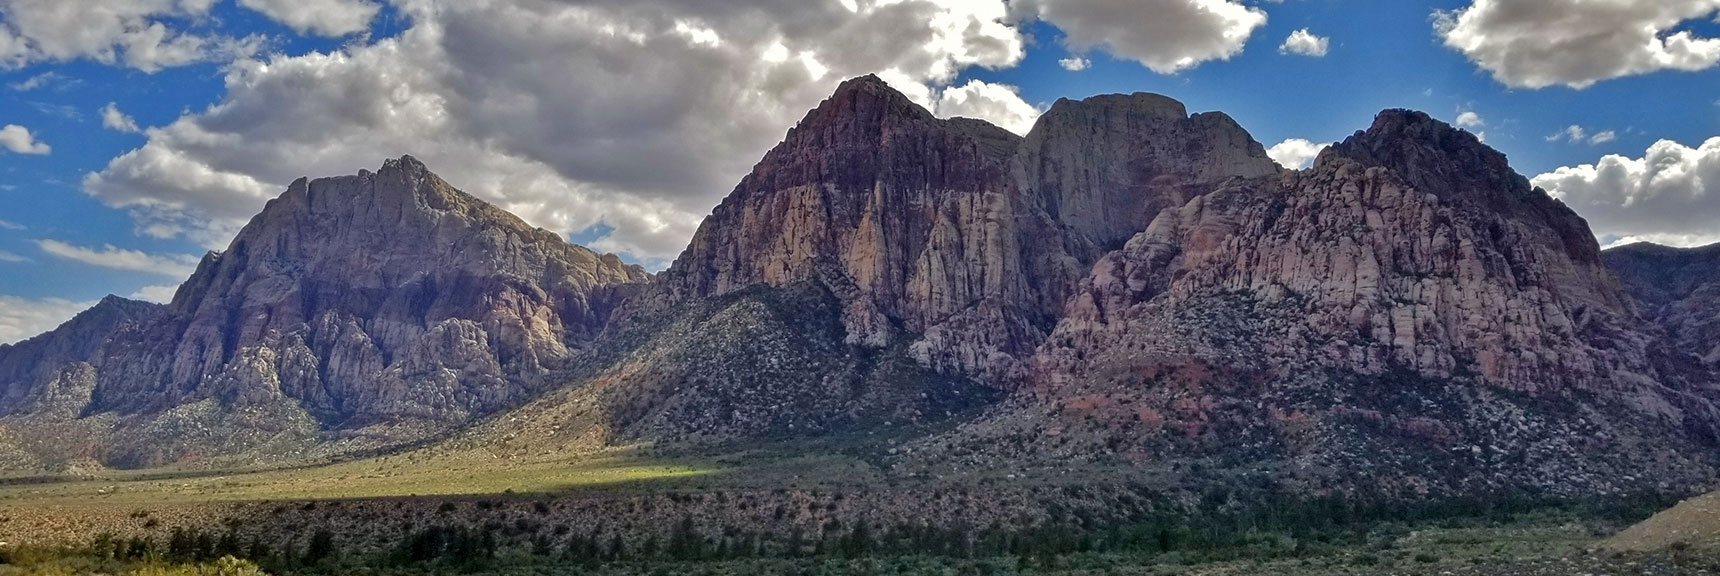 Red Rock National Park View of Mt. Wilson, Rainbow Mountain and Juniper Peak from Pine Creek Canyon Turnout